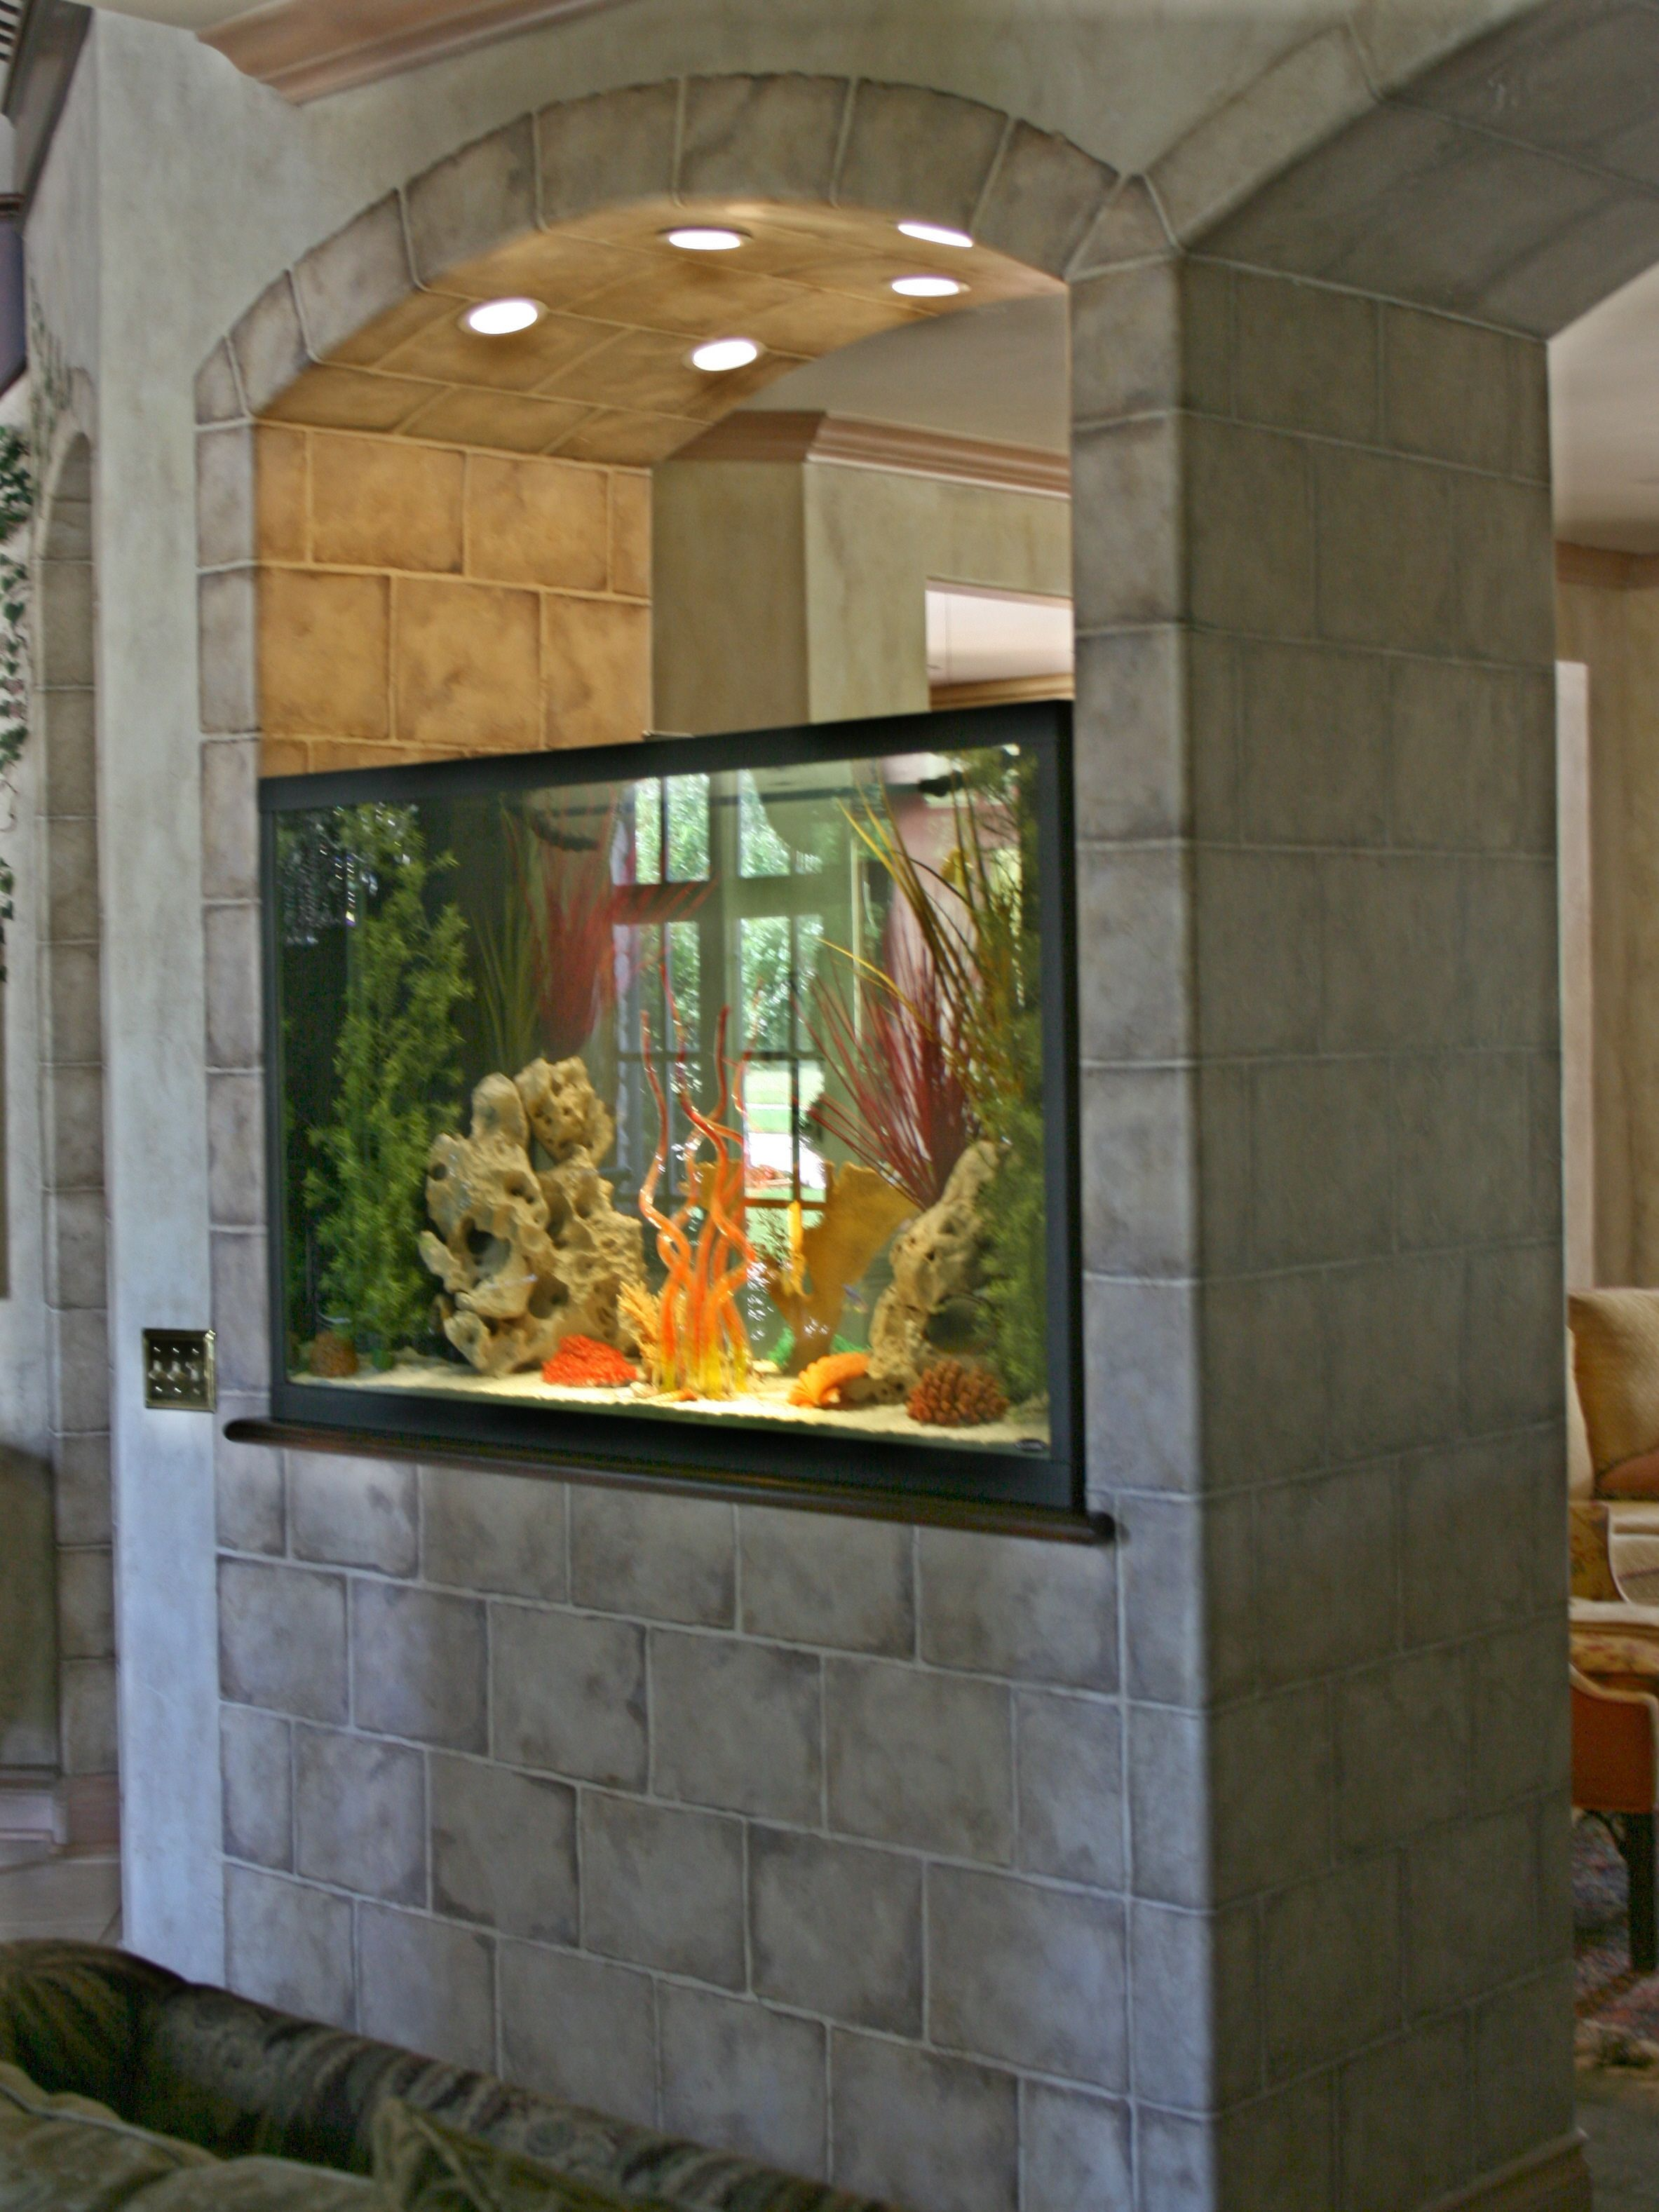 Fish tank cabinet za - Find This Pin And More On Aquariums Fish Etc